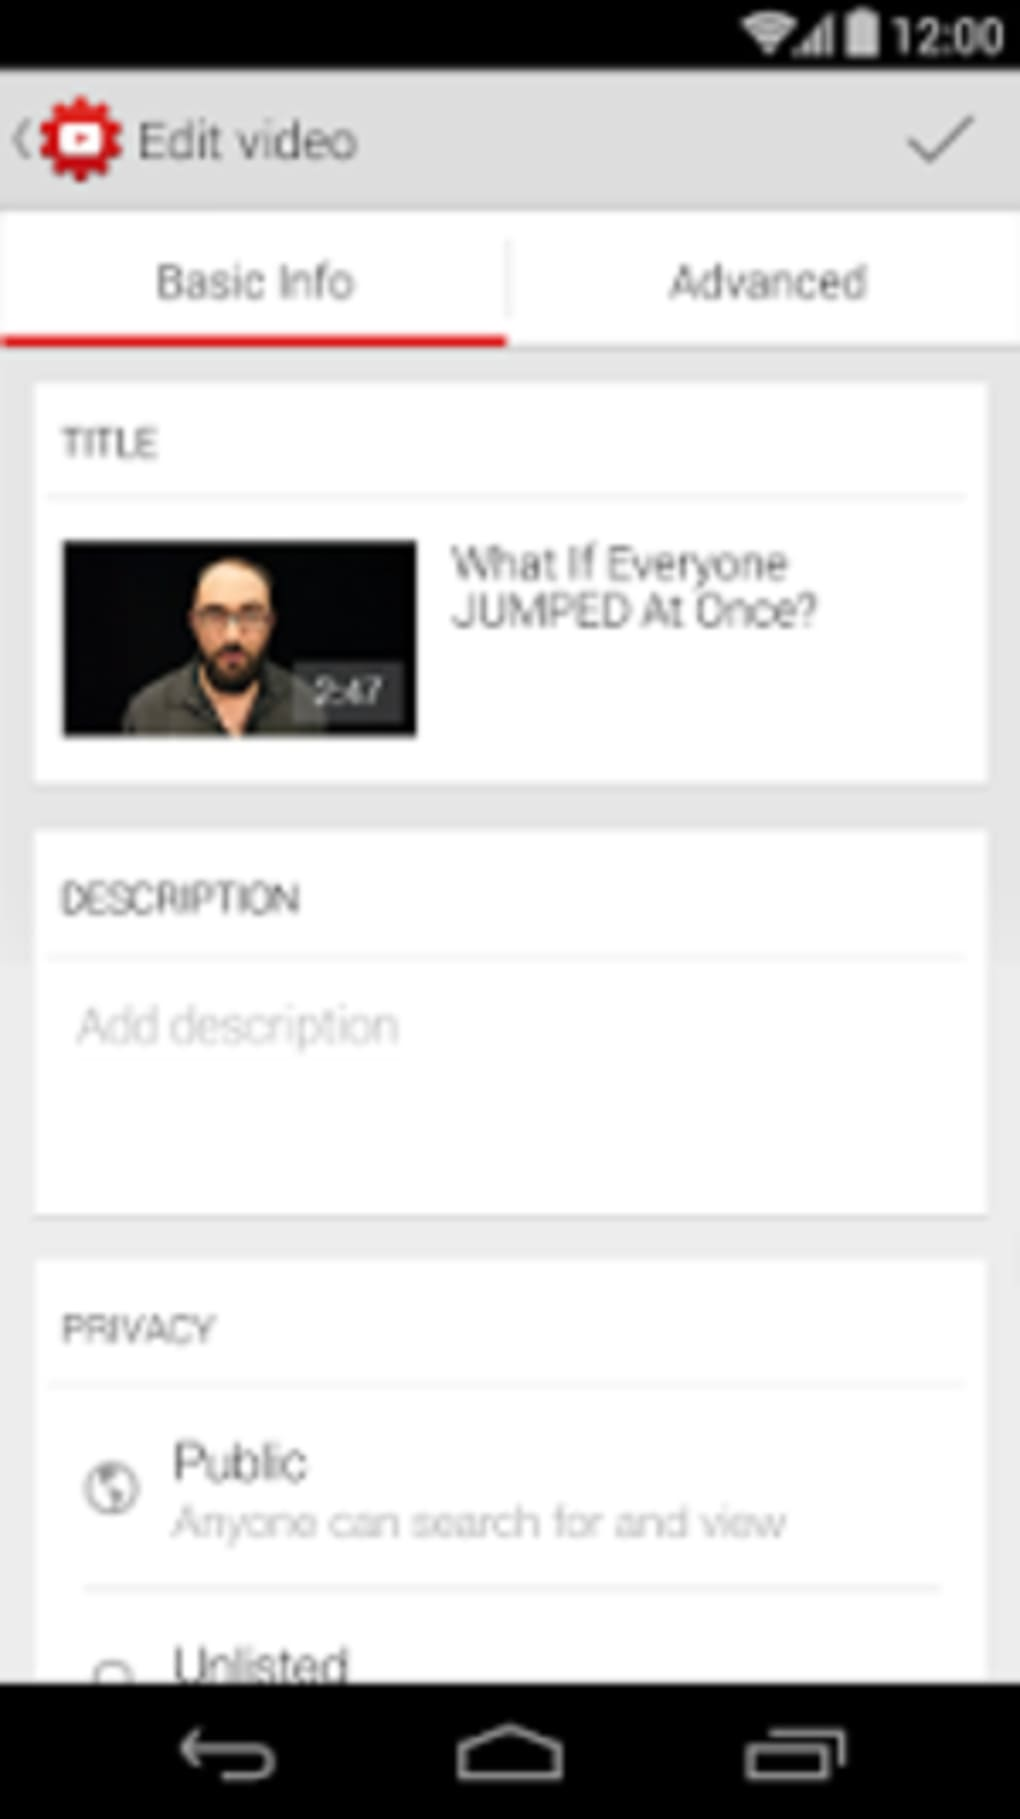 YouTube Creator Studio for Android - Download